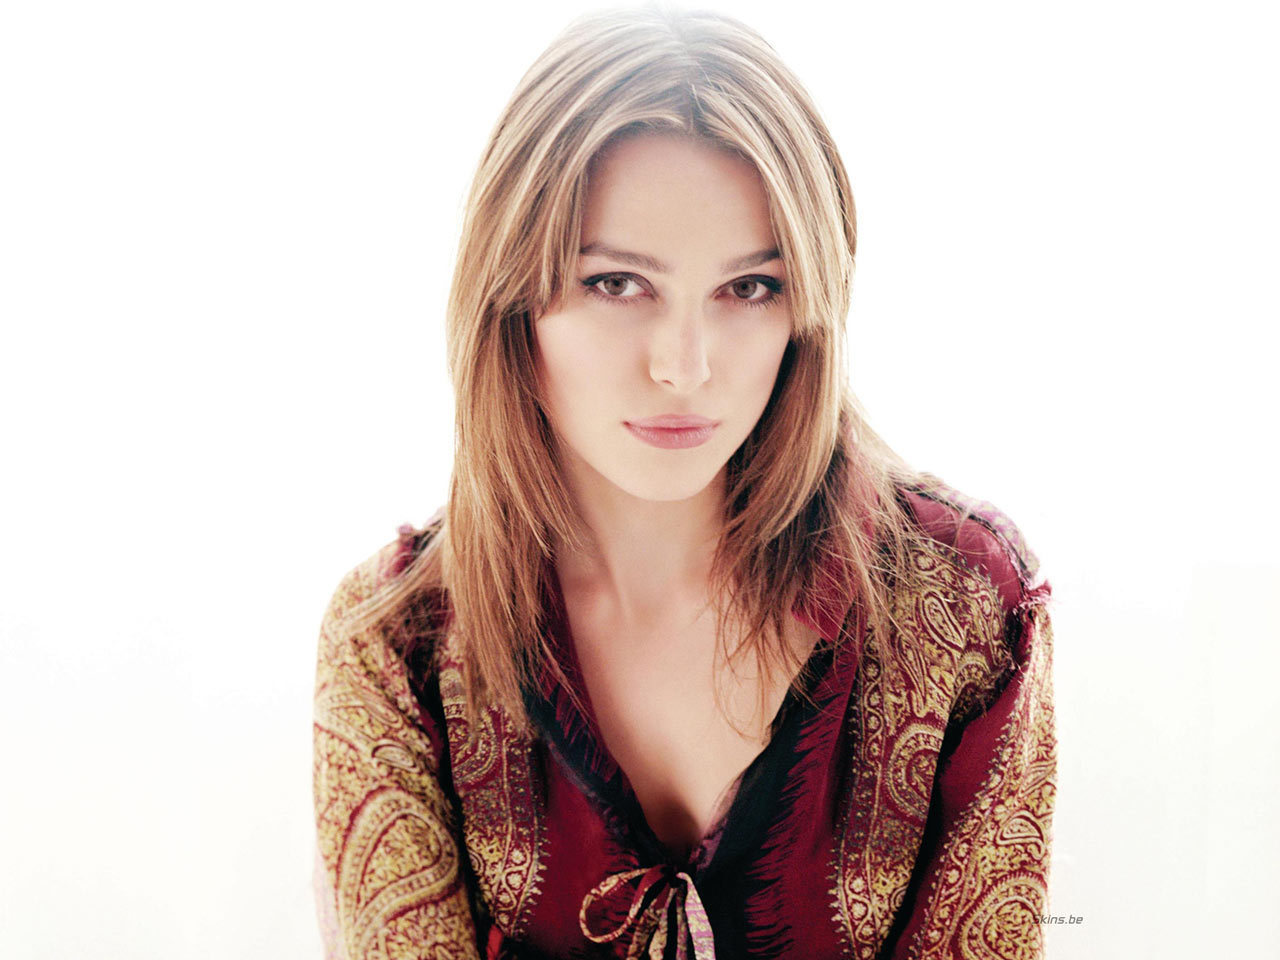 Http Www Fanpop Com Clubs Keira Knightley Images 7113250 Title Kiera Knighltey Hollywoods Most Stunning Wallpaper